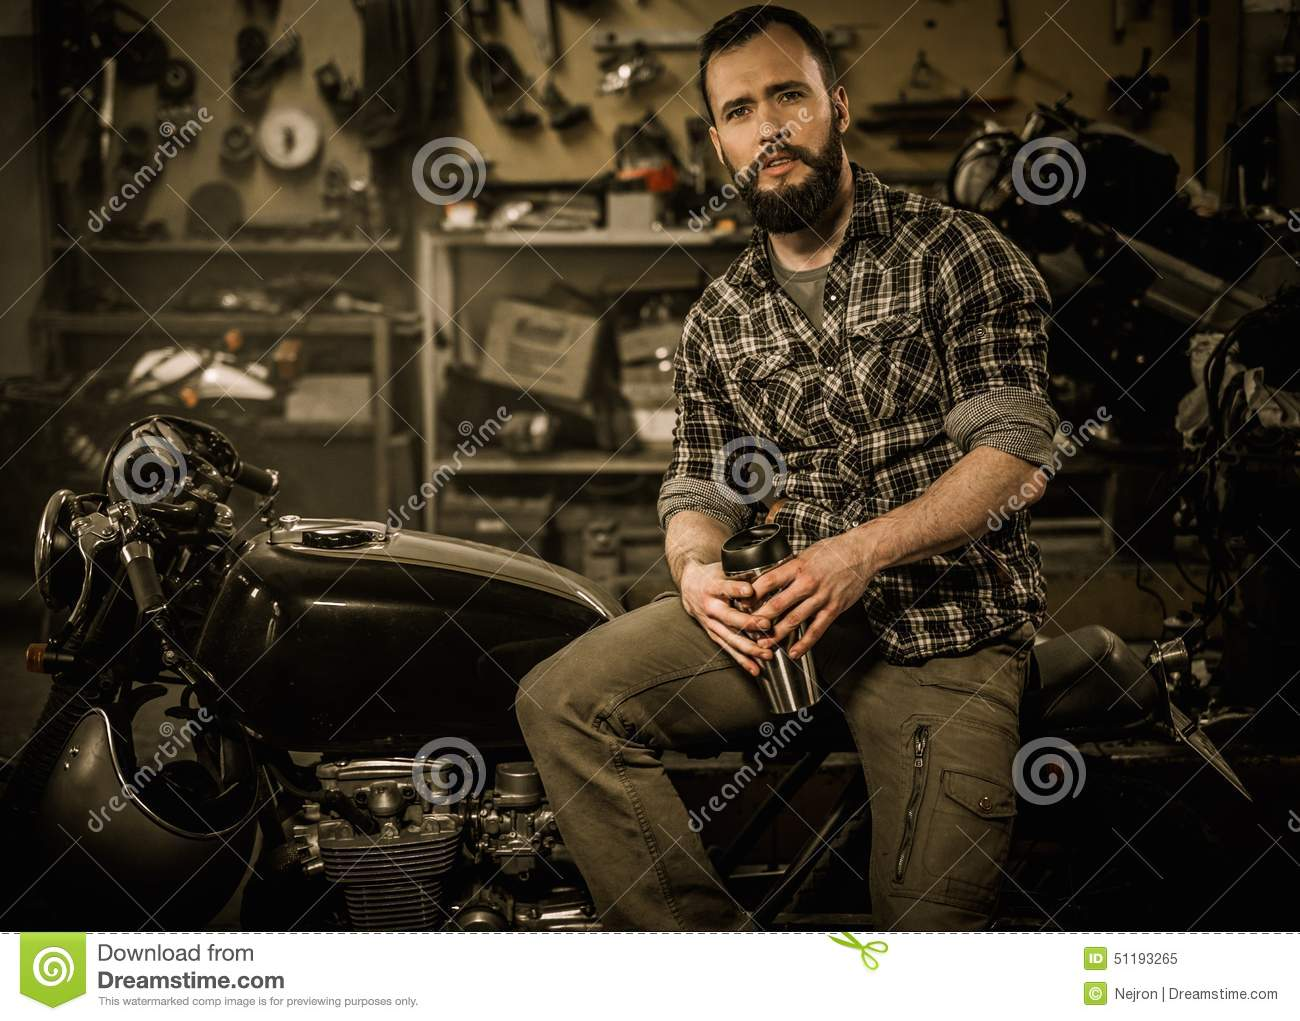 Mechanic building vintage style cafe-racer motorcycle